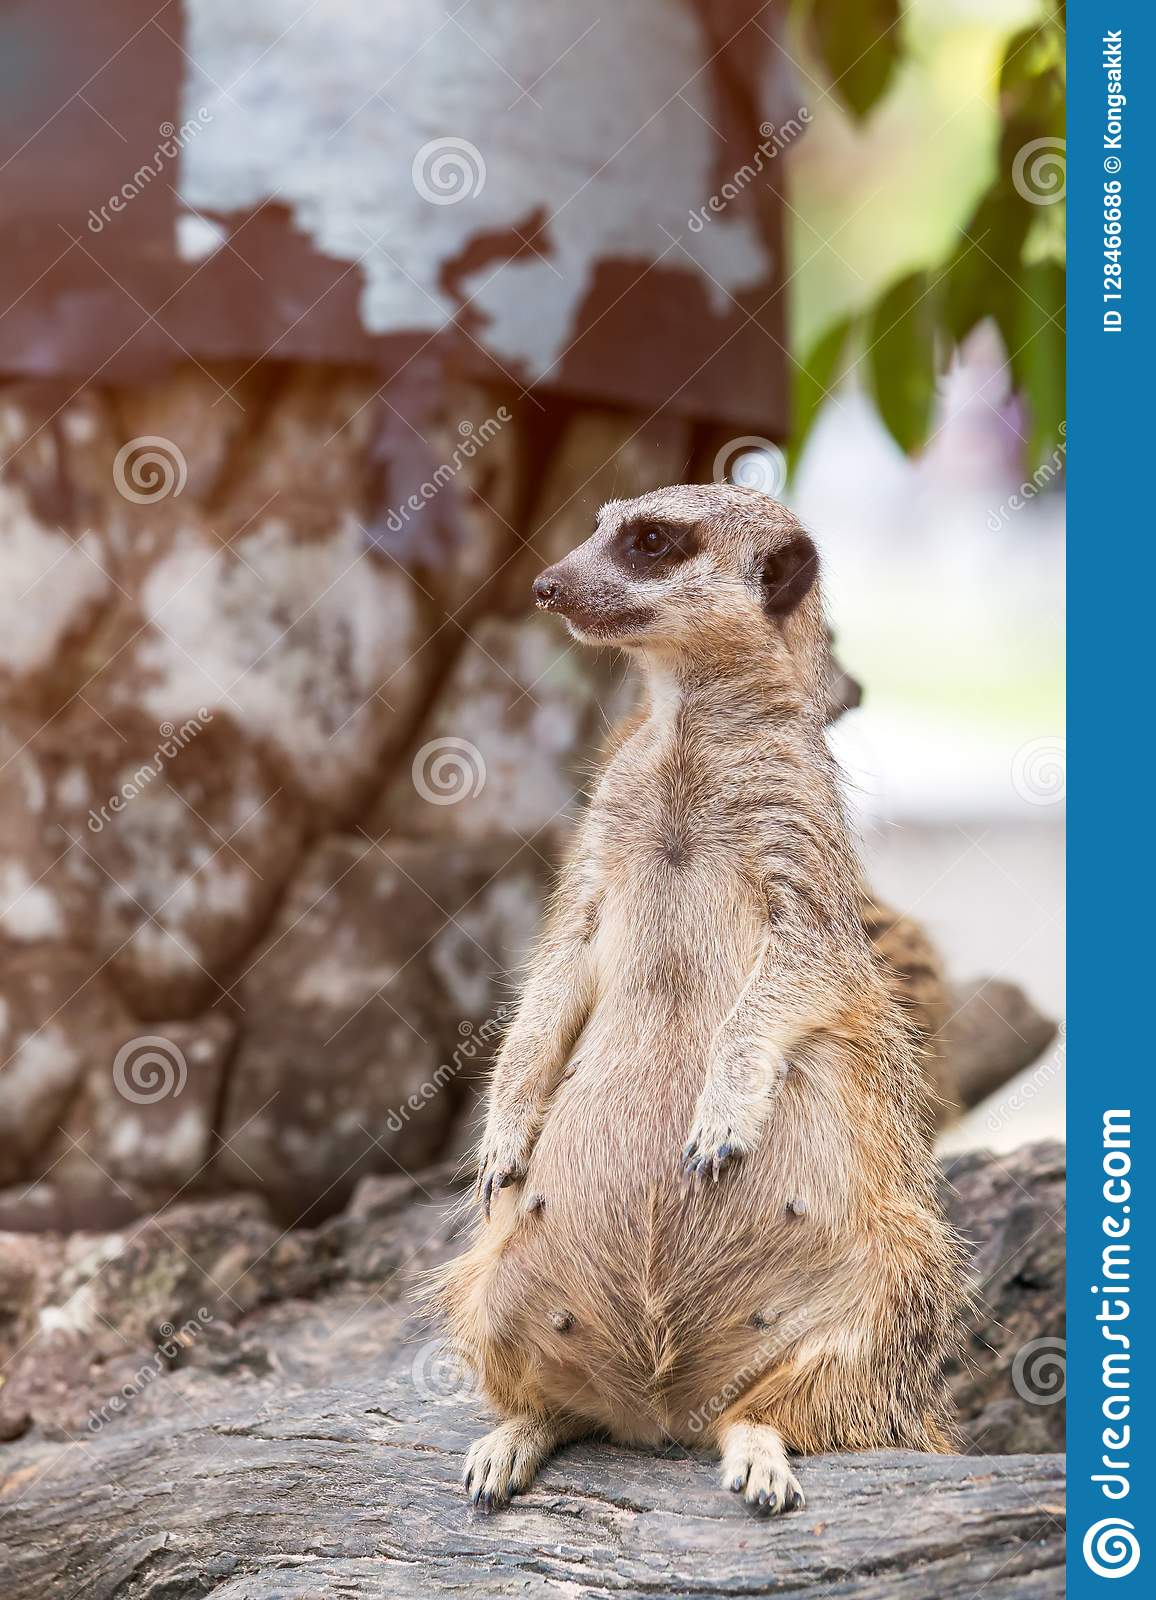 Meerkat standing over stump and looking a survey for drove